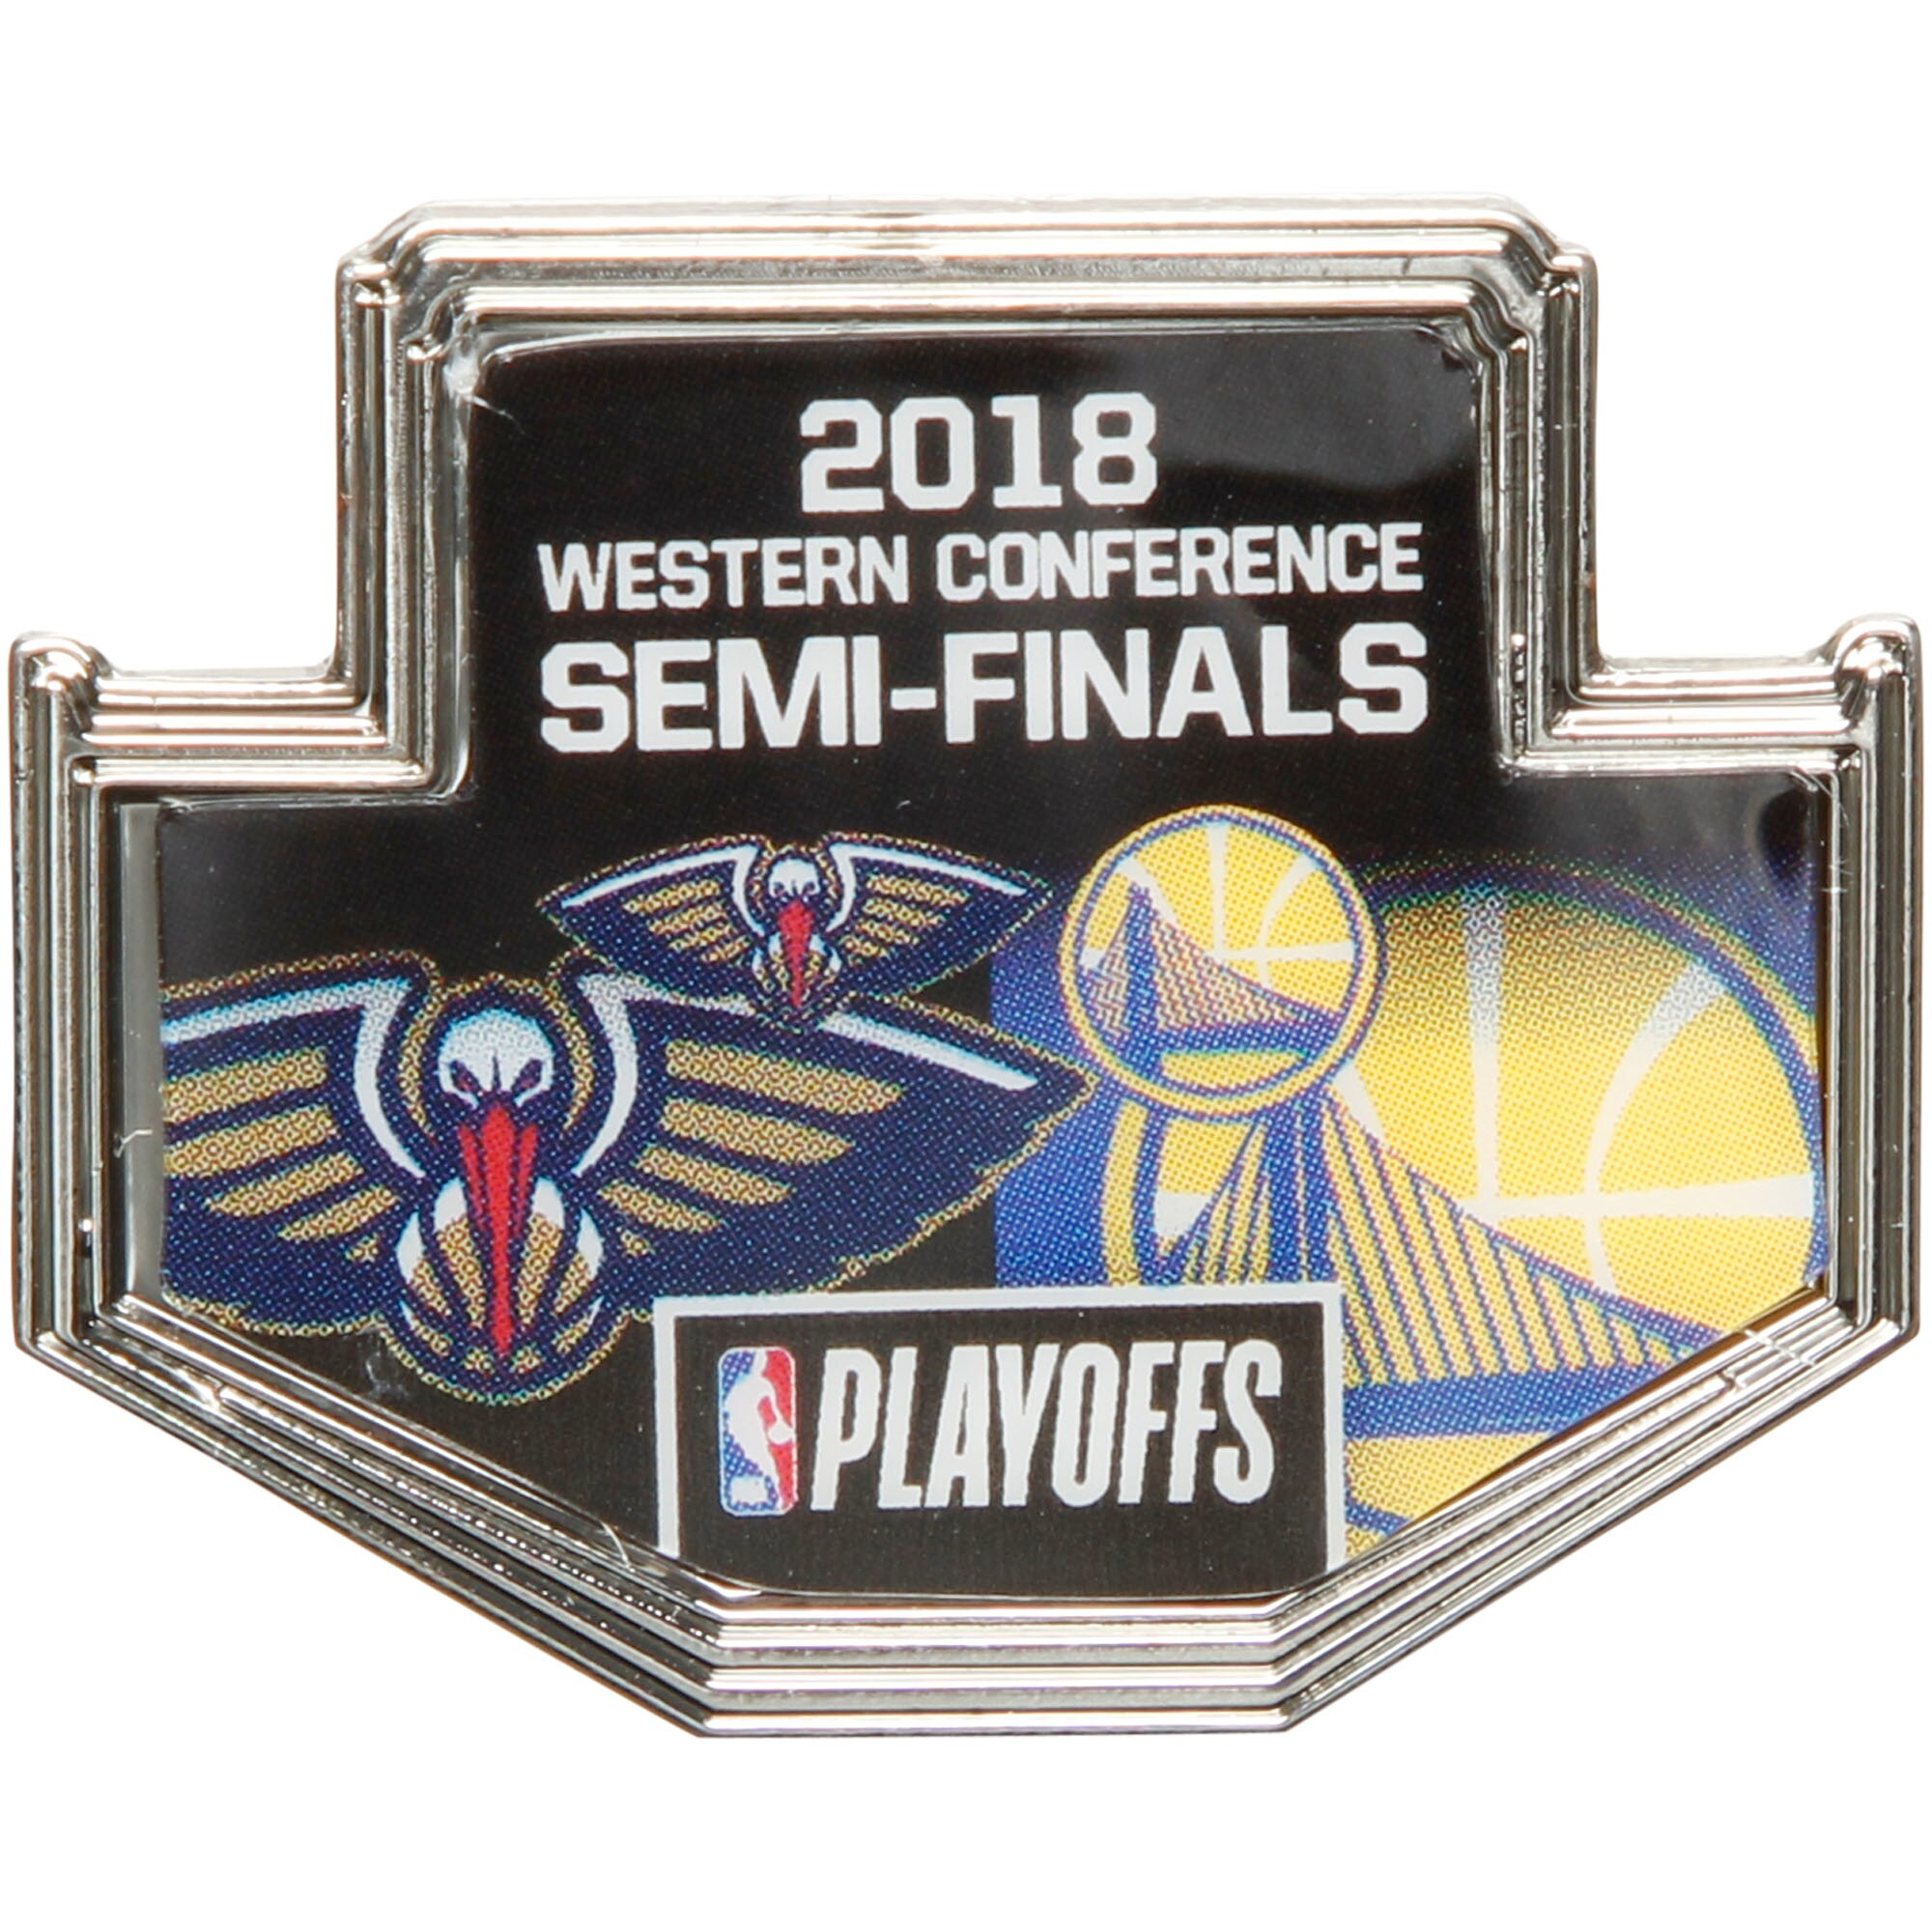 New Orleans Pelicans WinCraft 2018 Playoff Team Pin